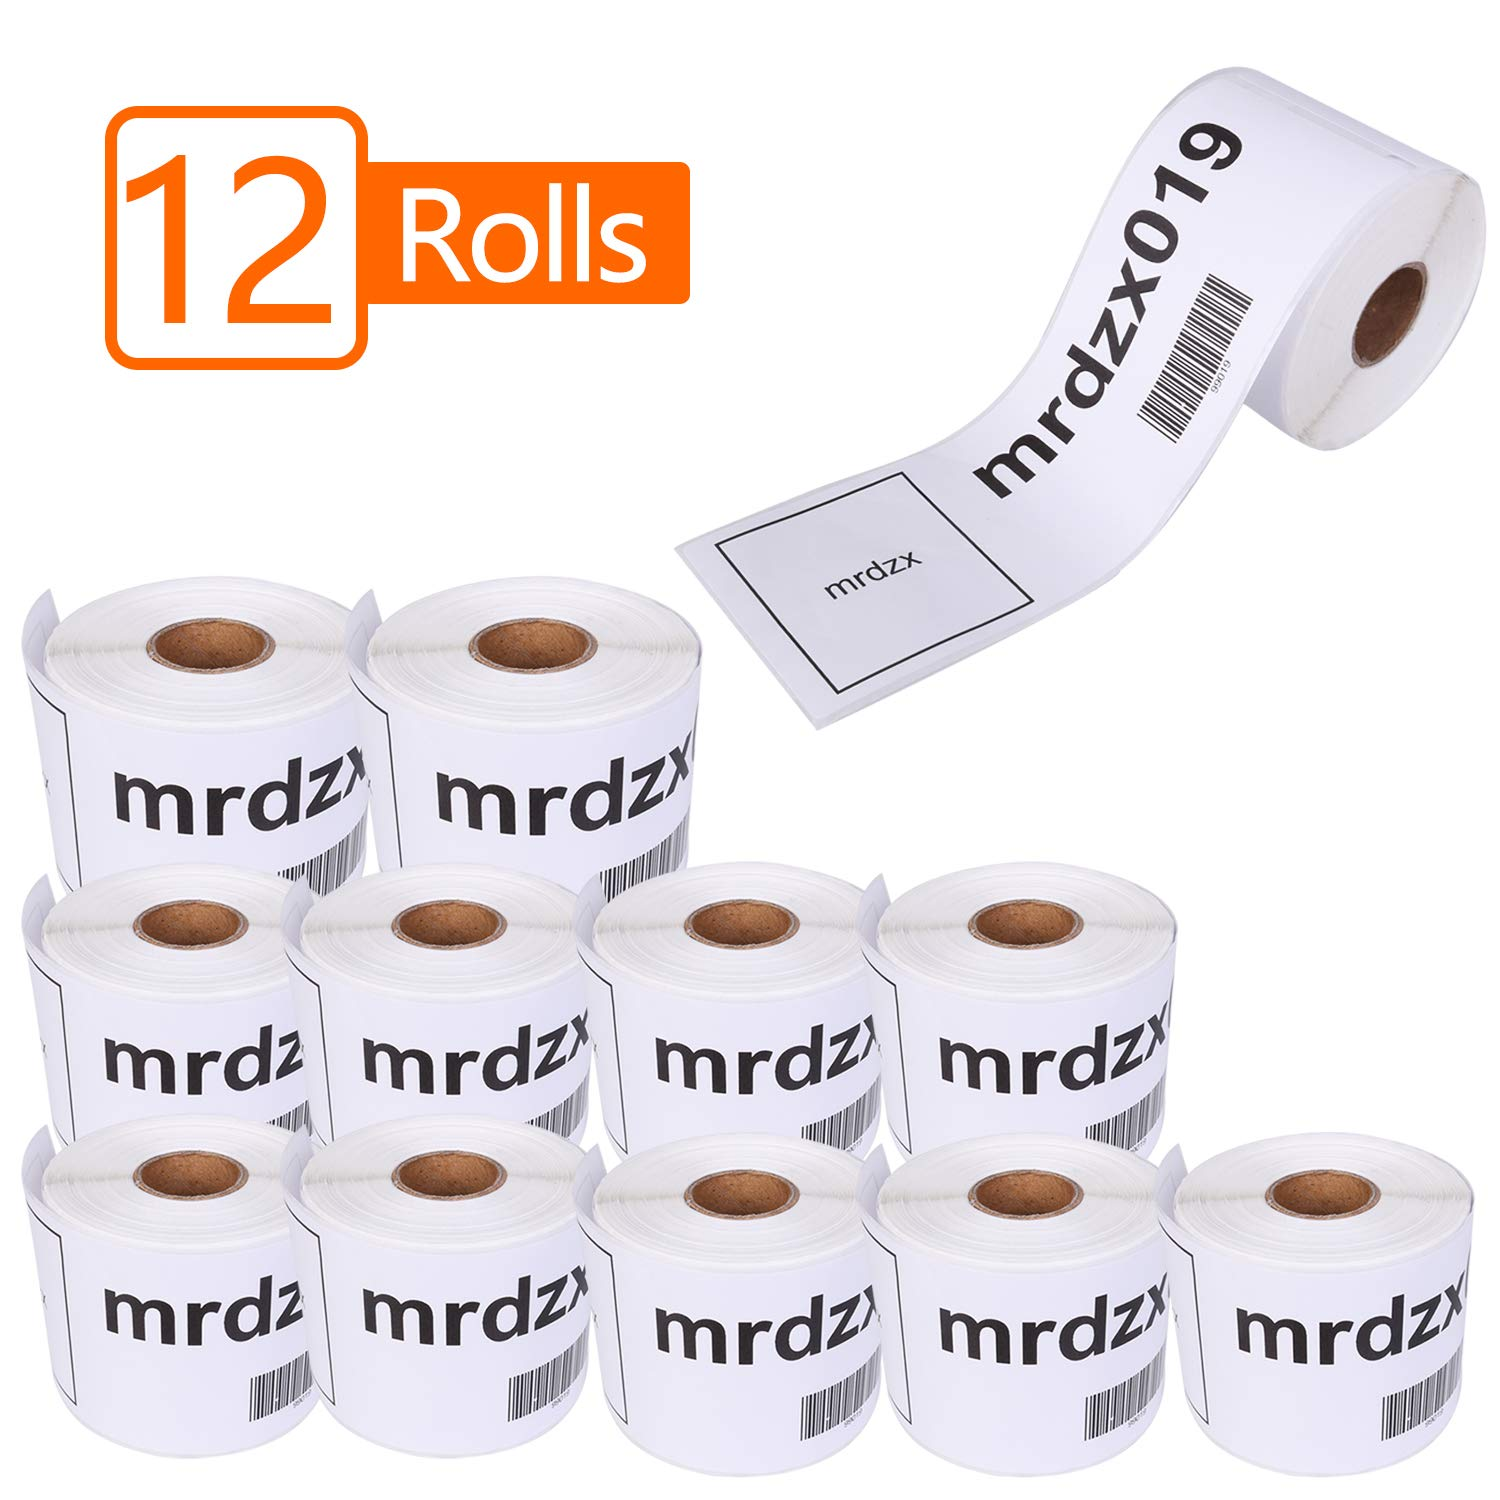 12 Rolls Compatible Dymo 99019 Internet Postage Labels, 2-5/16'' x 7-1/2'' LW 1 Part Paypal/Ebay/Replacement Labels for Labelwriter 400, 450, 4XL Printers,700 Labels Per Roll by mrdzx